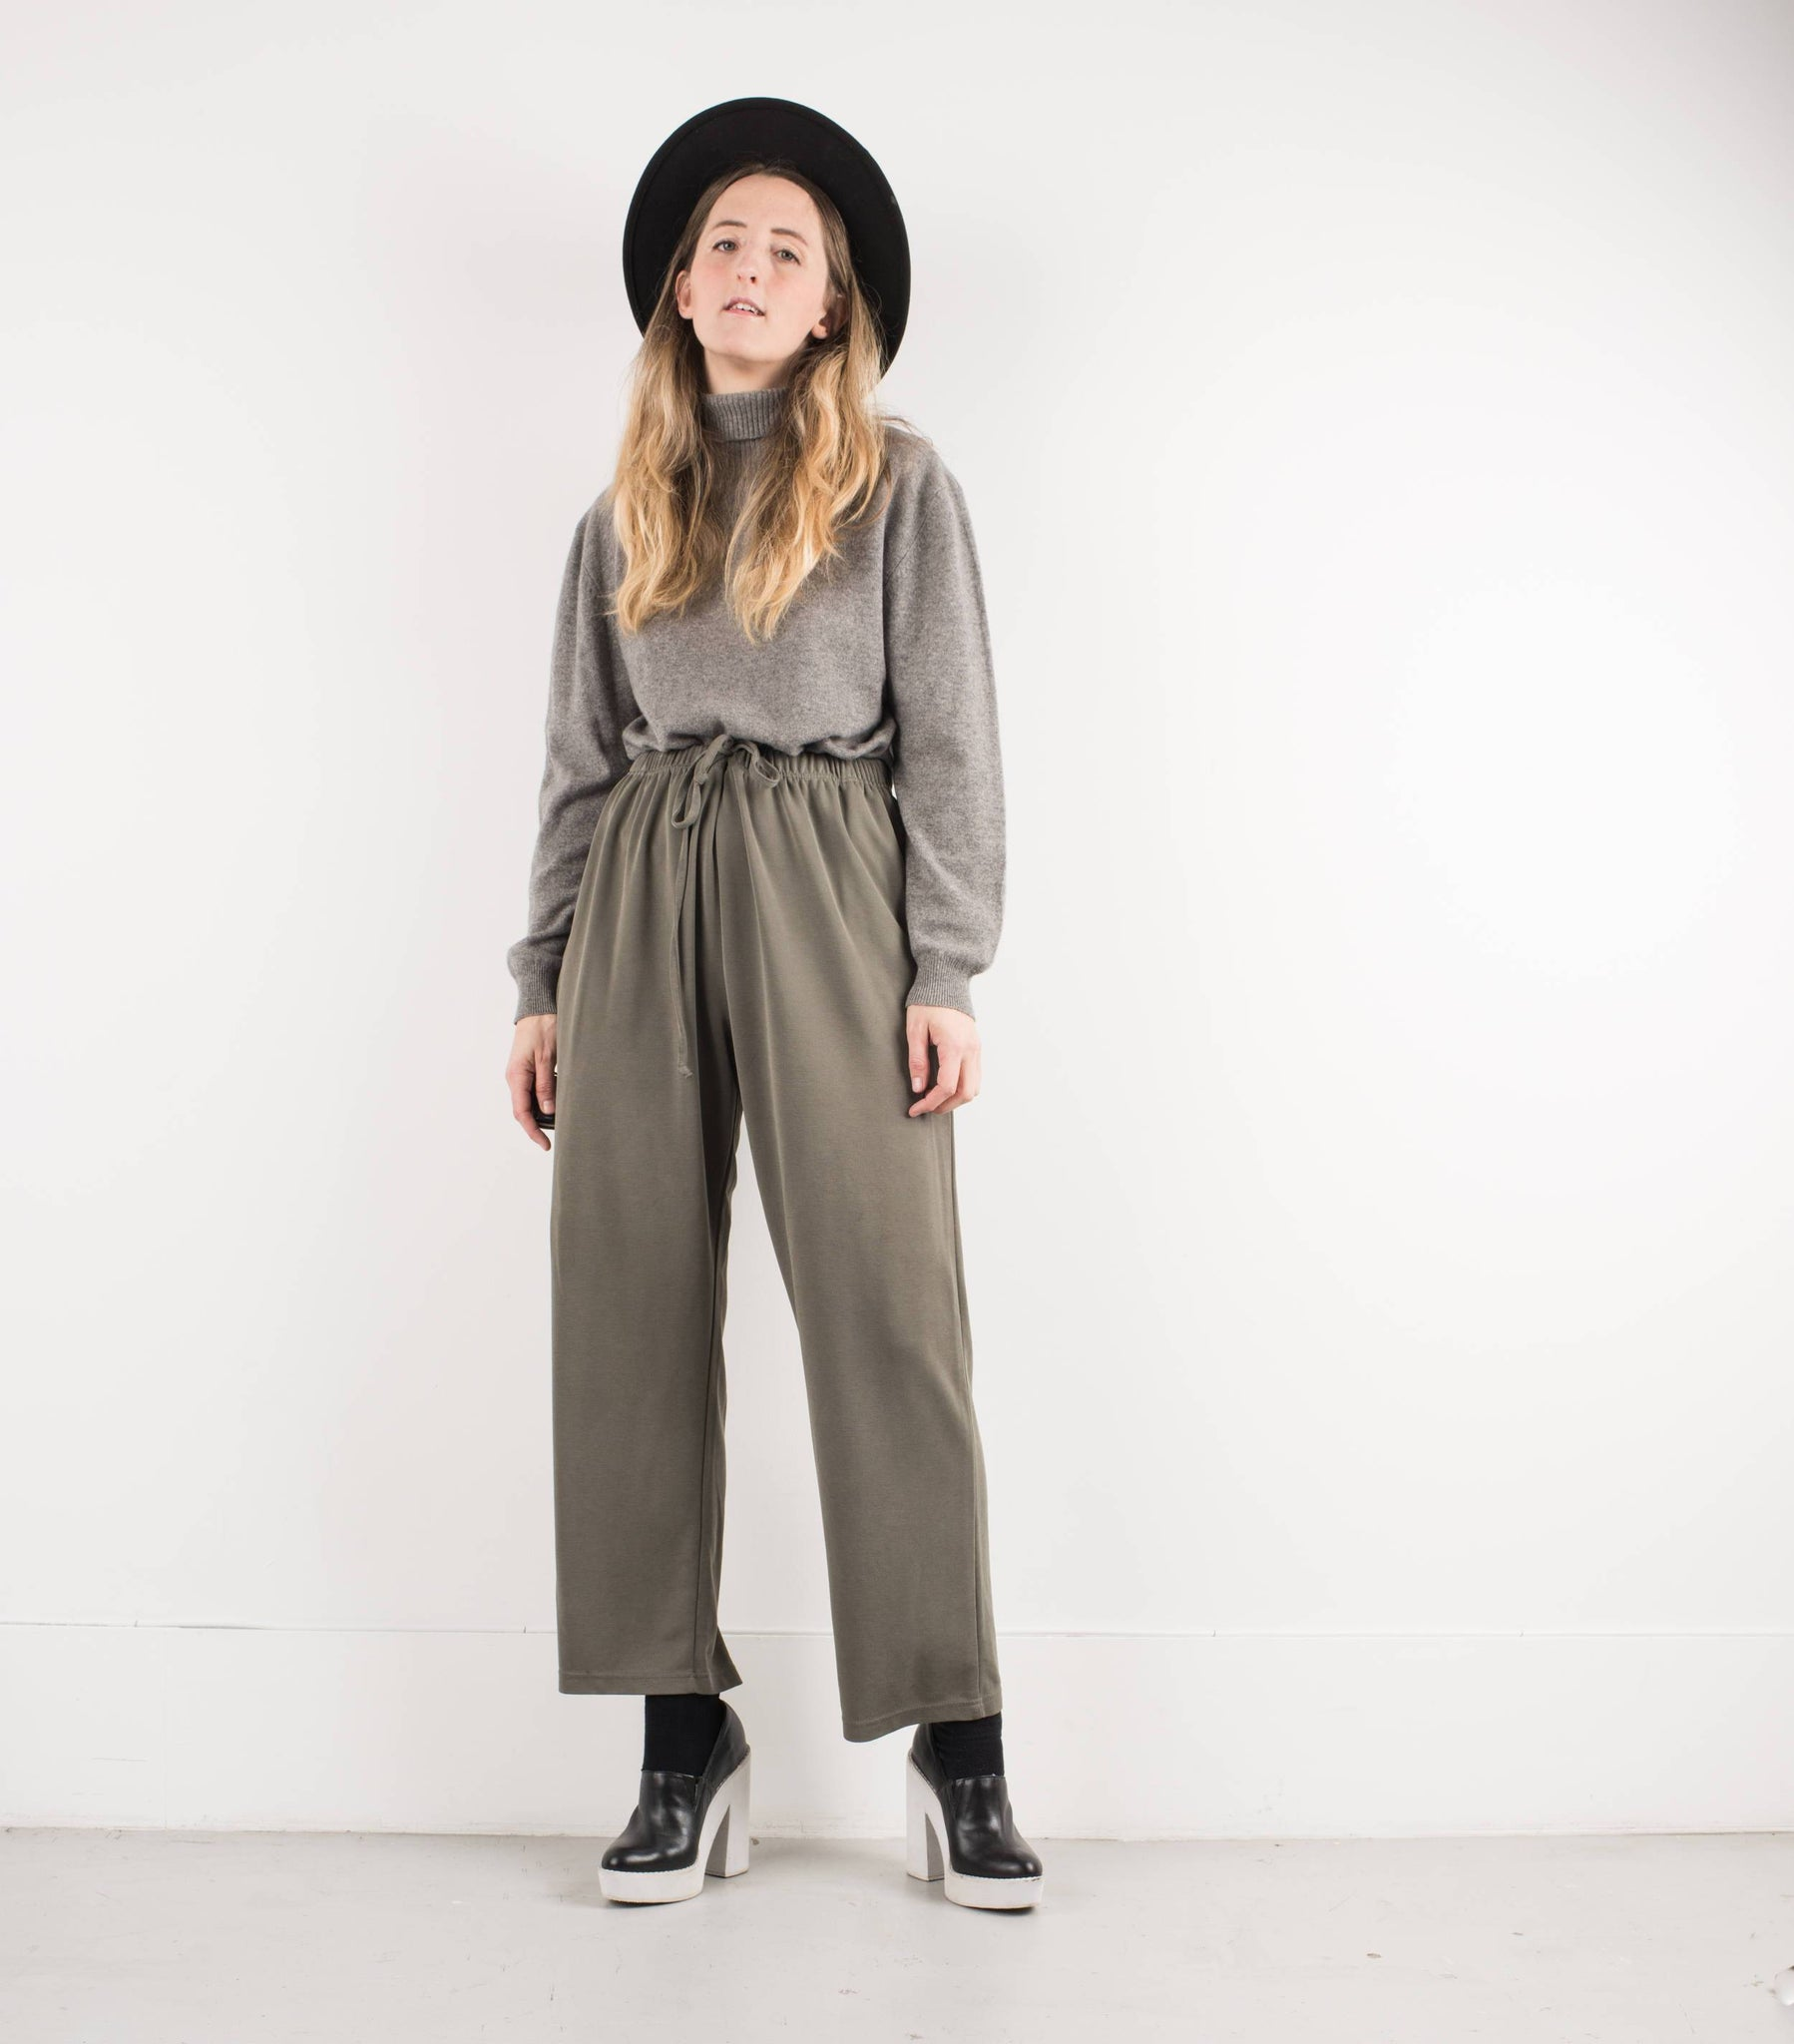 Vintage Olive Green Drawstring Pants / S - Closed Caption